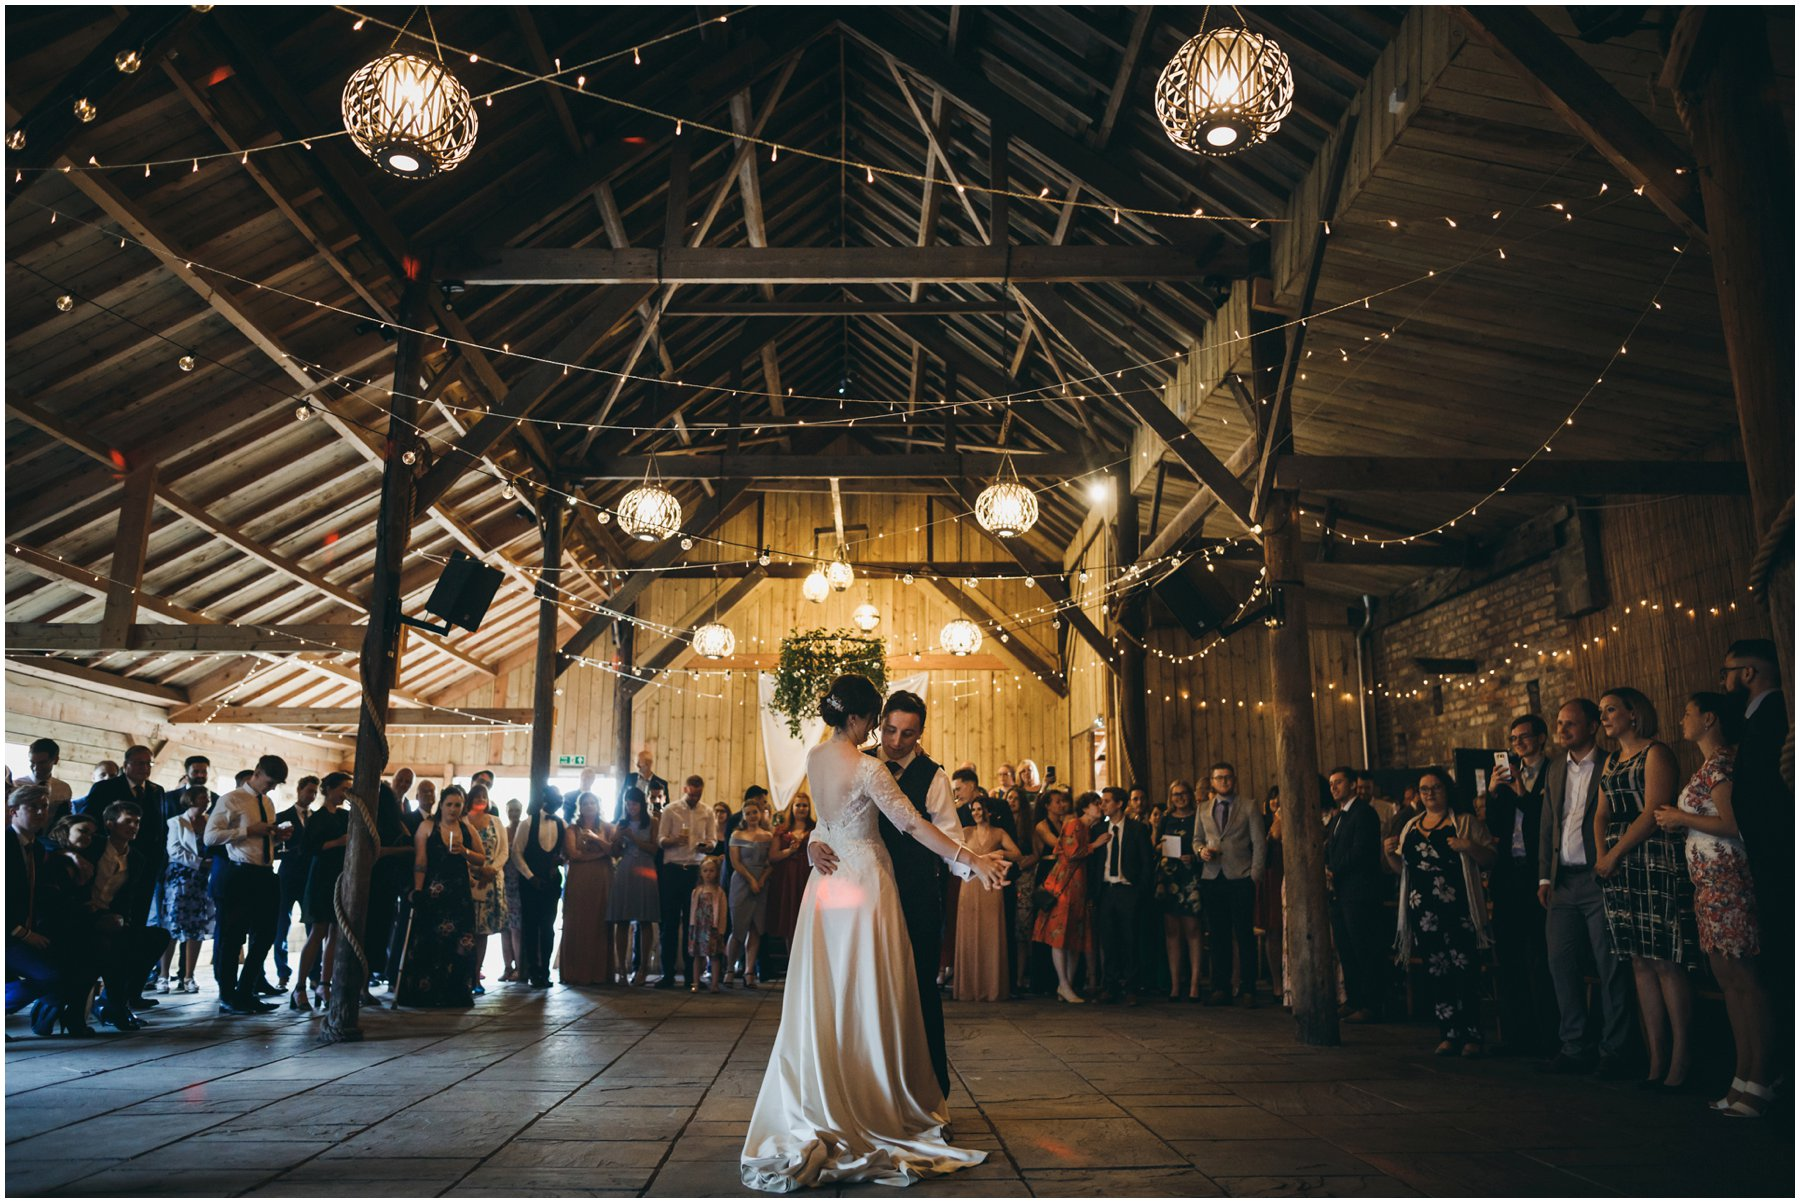 York Maze Wedding Photography barn dance